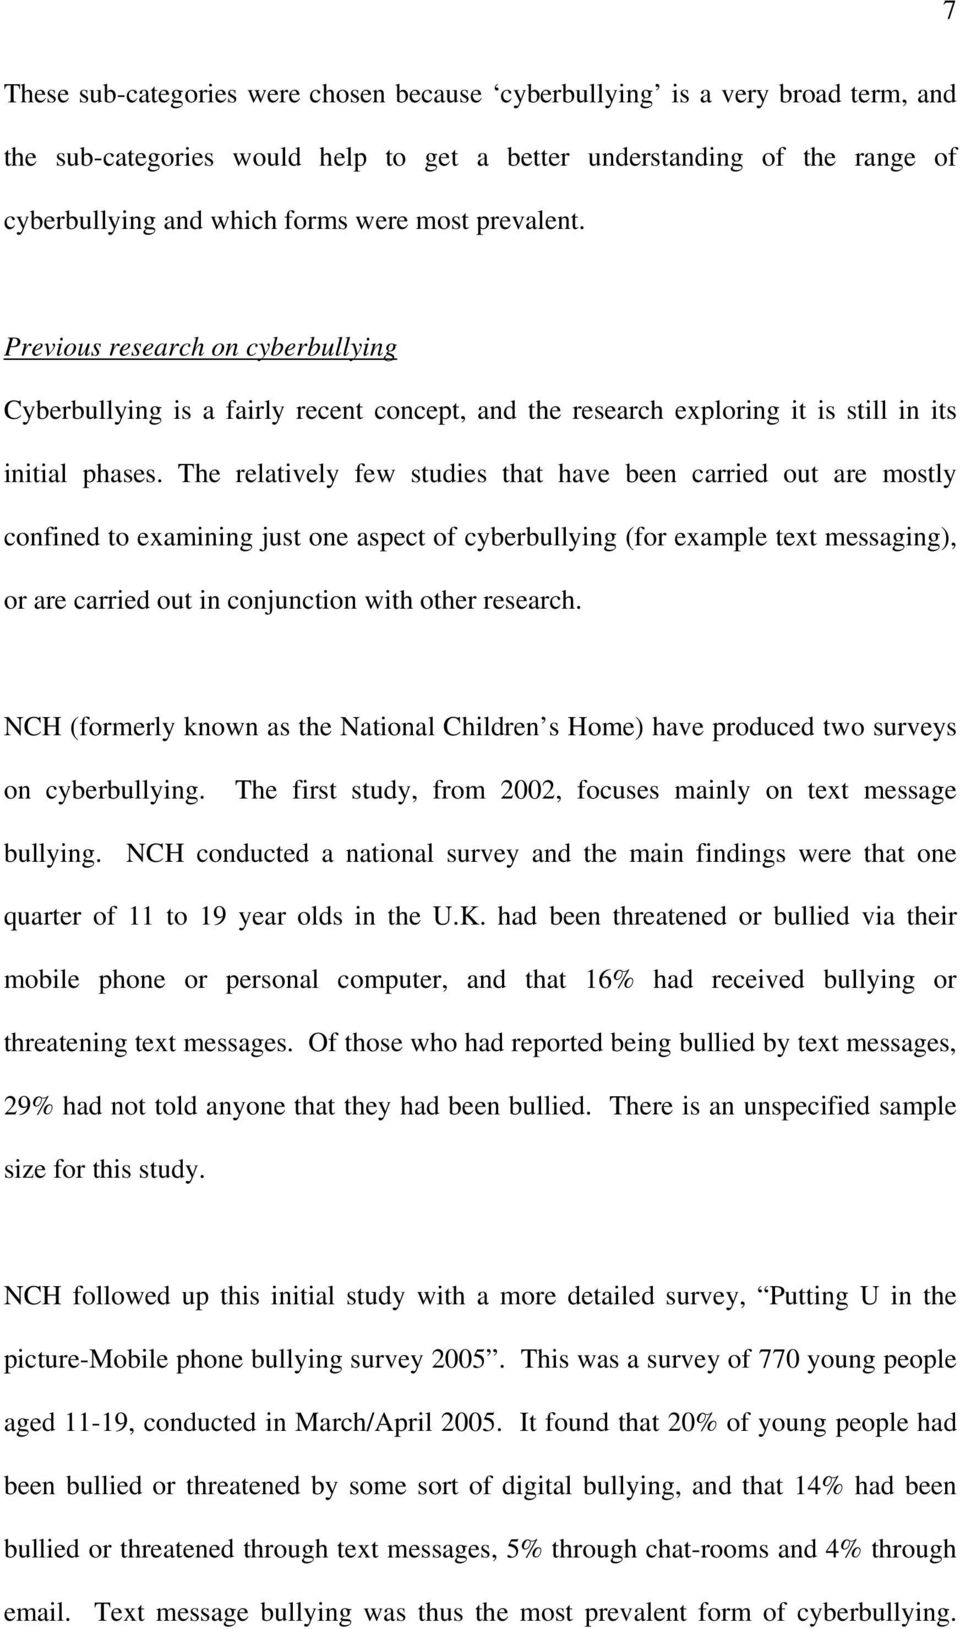 The relatively few studies that have been carried out are mostly confined to examining just one aspect of cyberbullying (for example text messaging), or are carried out in conjunction with other